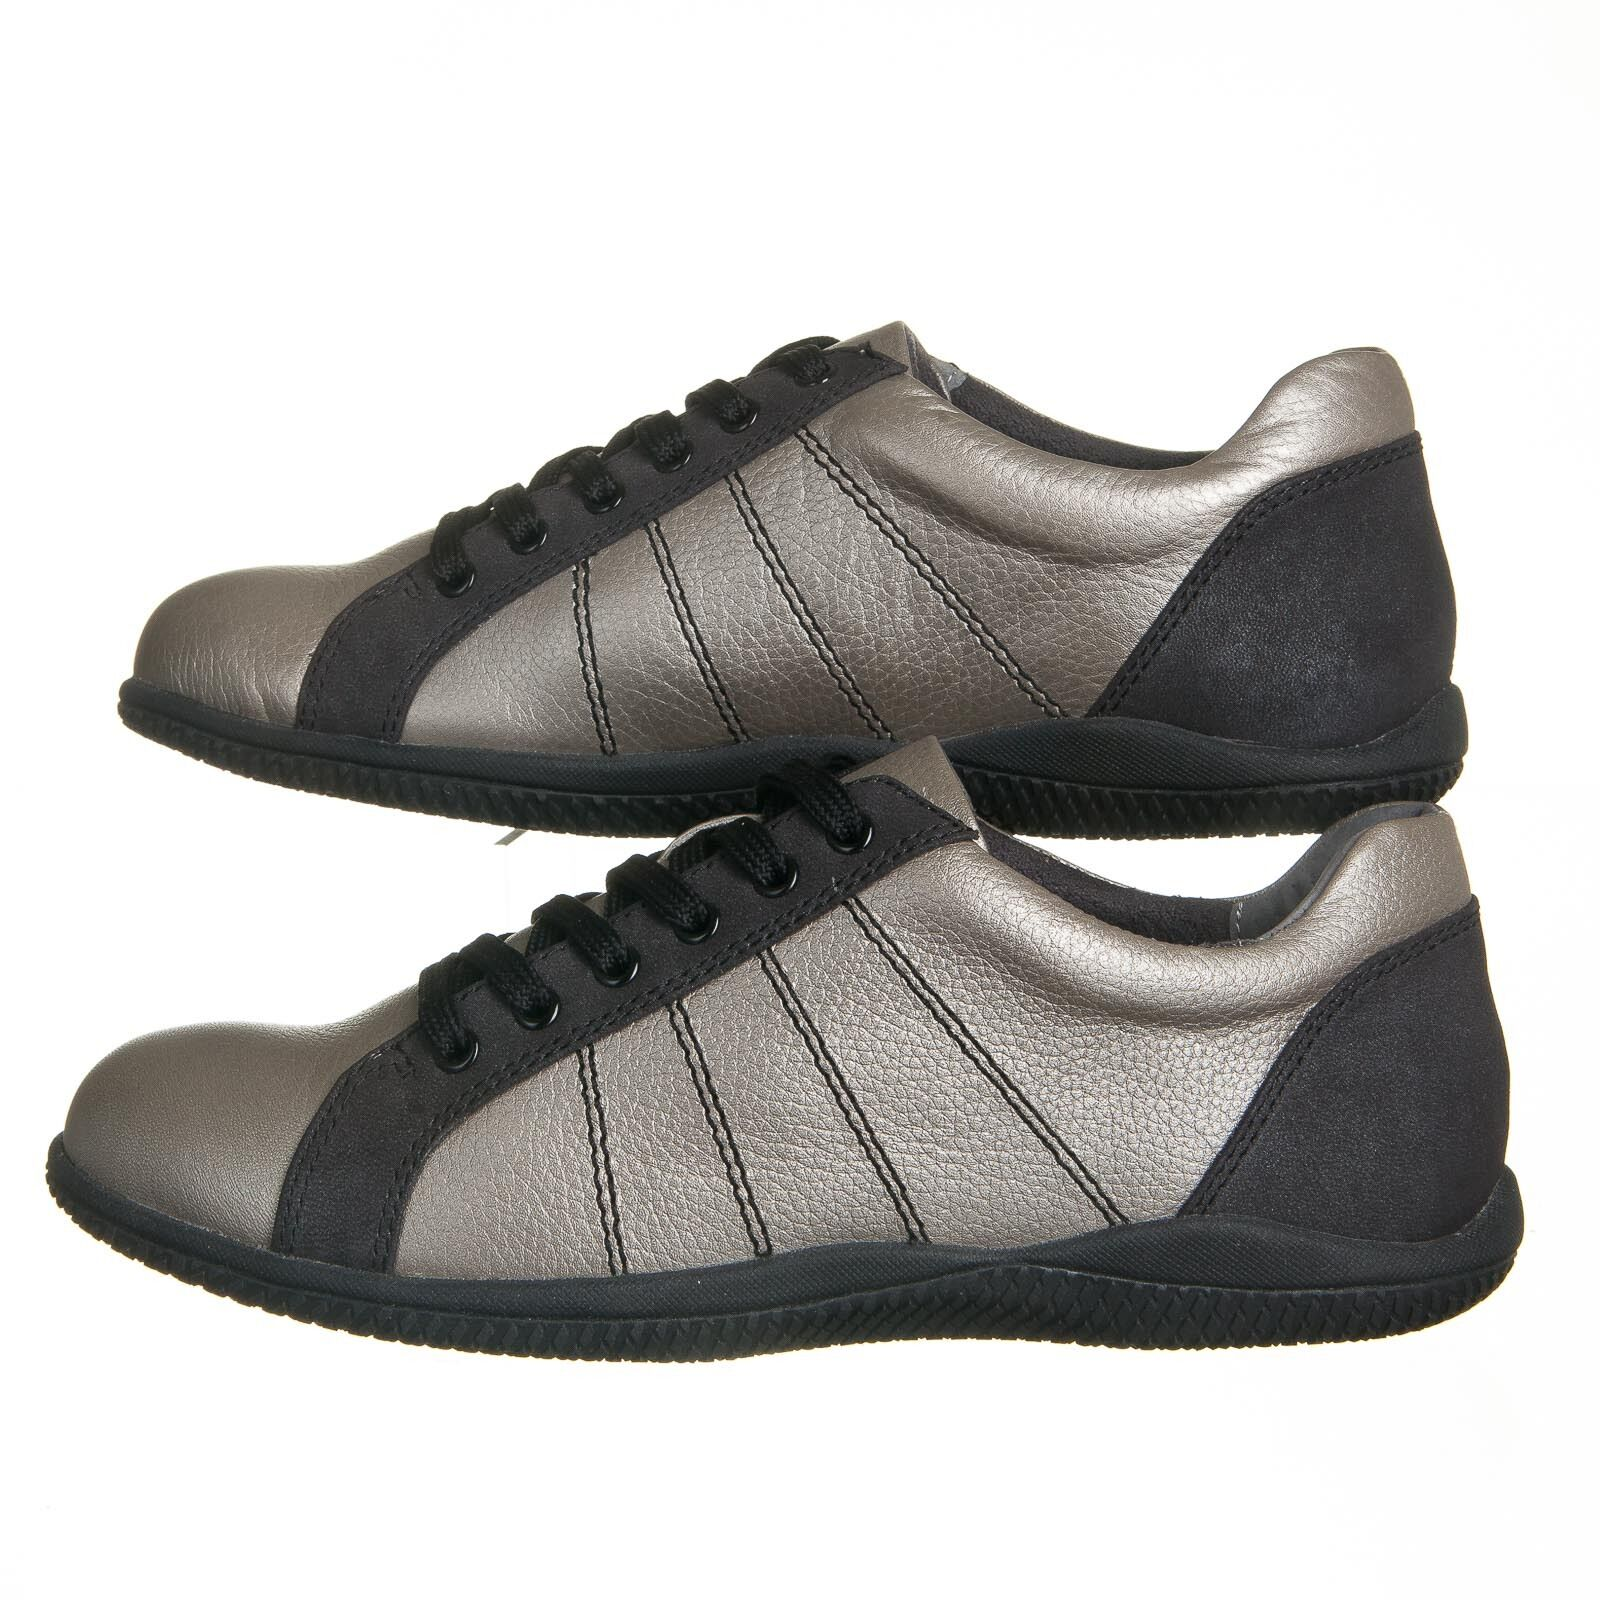 SoftWalk Hickory Silver Black Nubuck Leather Sneakers - Womens Size 6.5 N